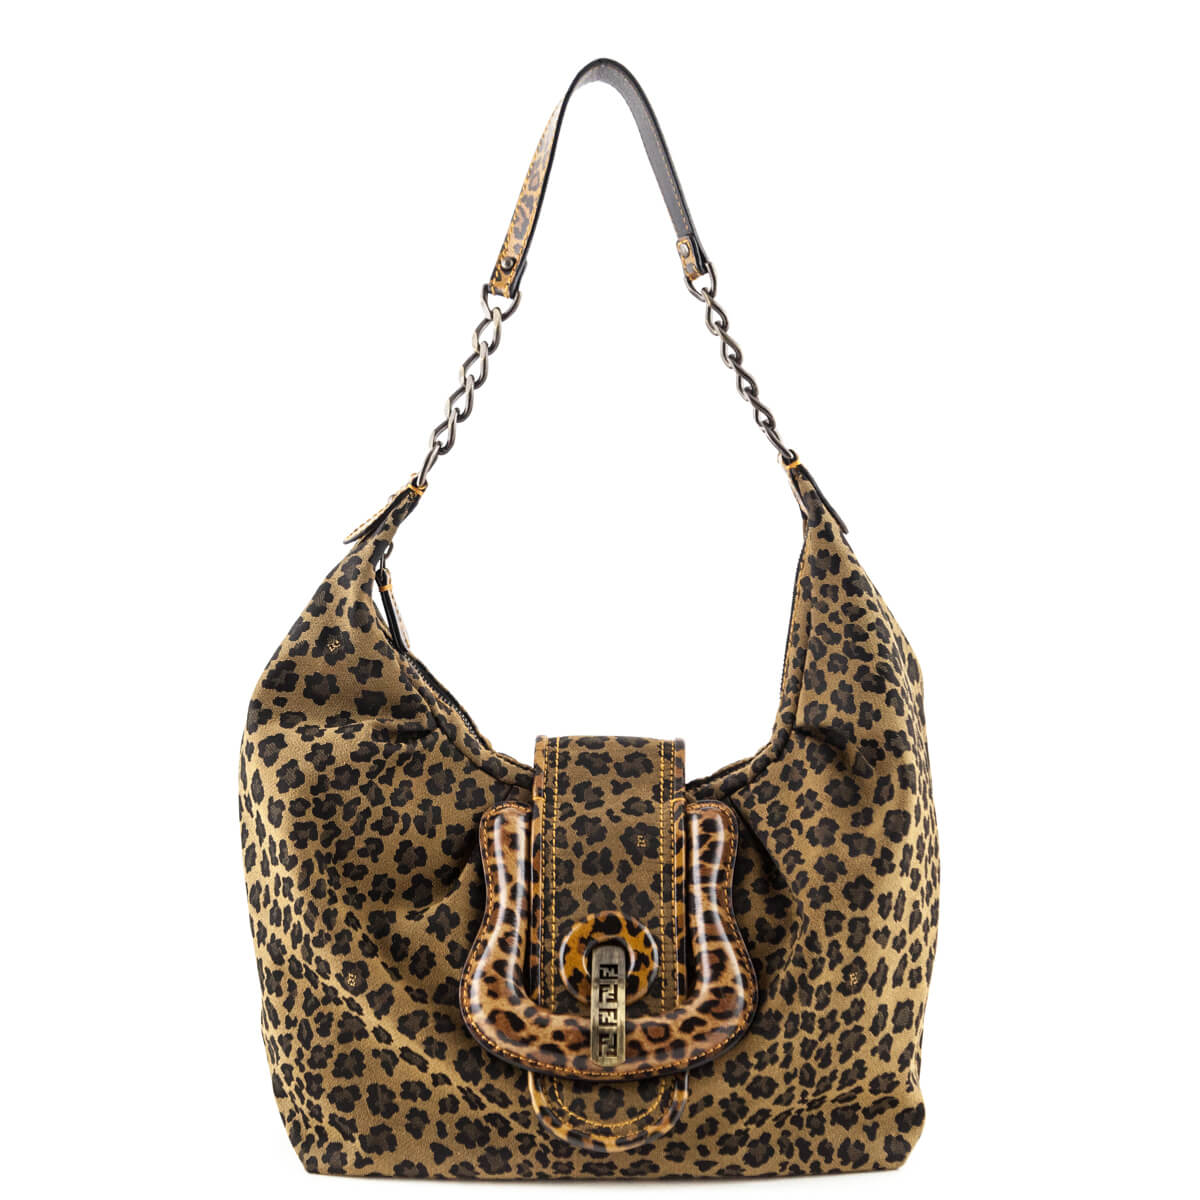 Fendi Leopard Canvas B. Hobo bag - LOVE that BAG - Preowned Authentic  Designer Handbags ... 56155e383679b